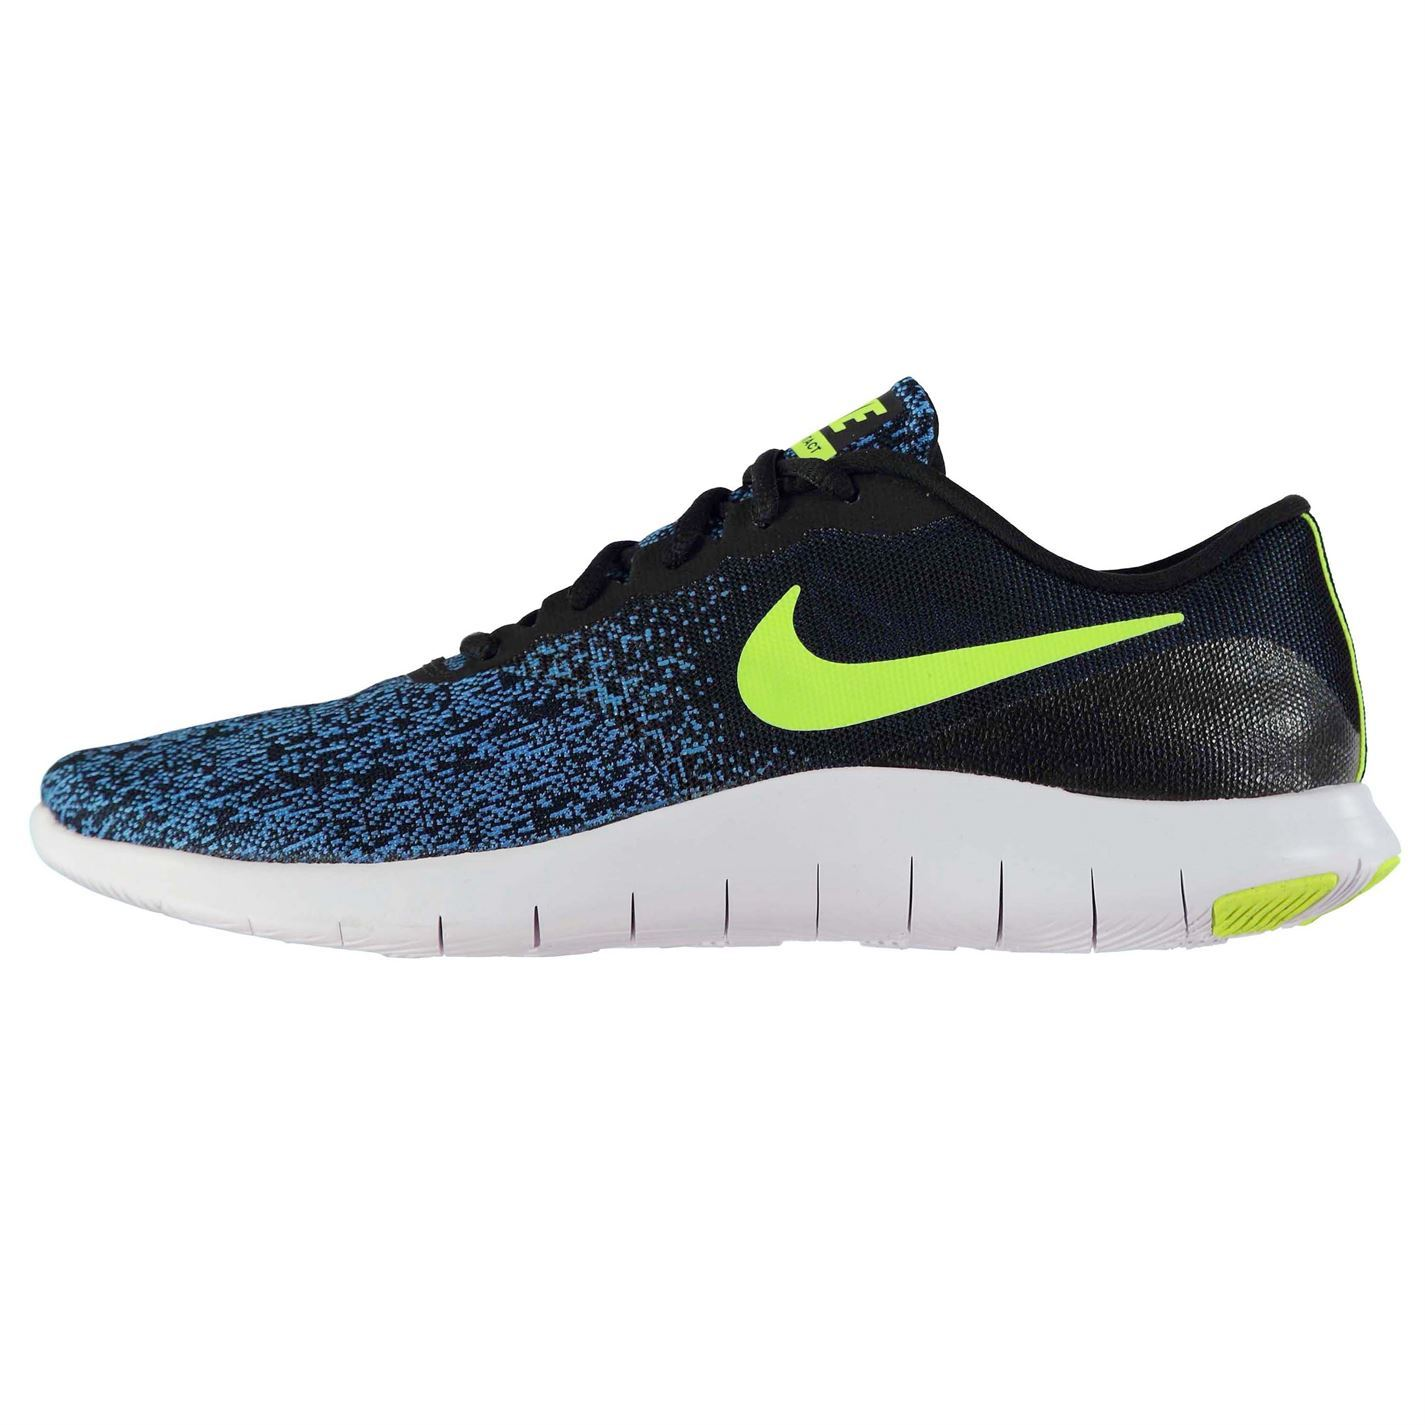 6ad0d4ad41f Free postage. Image is loading Nike-Flex-Contact-Running-Shoes-Mens-Black- Volt-